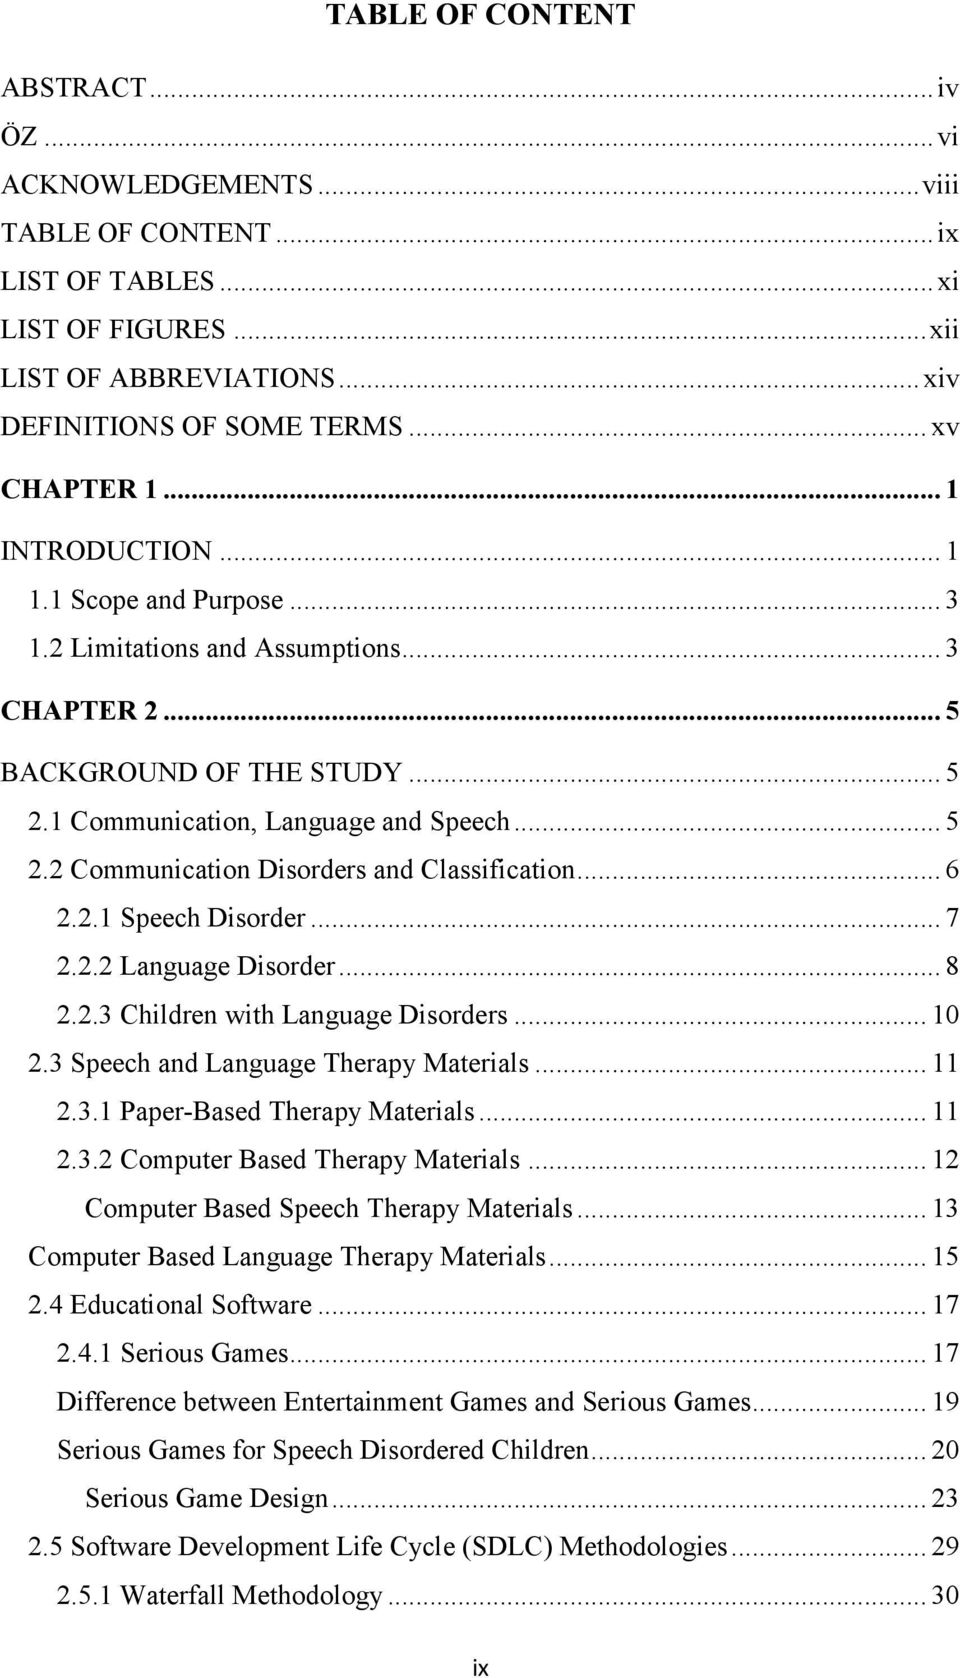 .. 6 2.2.1 Speech Disorder... 7 2.2.2 Language Disorder... 8 2.2.3 Children with Language Disorders... 10 2.3 Speech and Language Therapy Materials... 11 2.3.1 Paper-Based Therapy Materials... 11 2.3.2 Computer Based Therapy Materials.